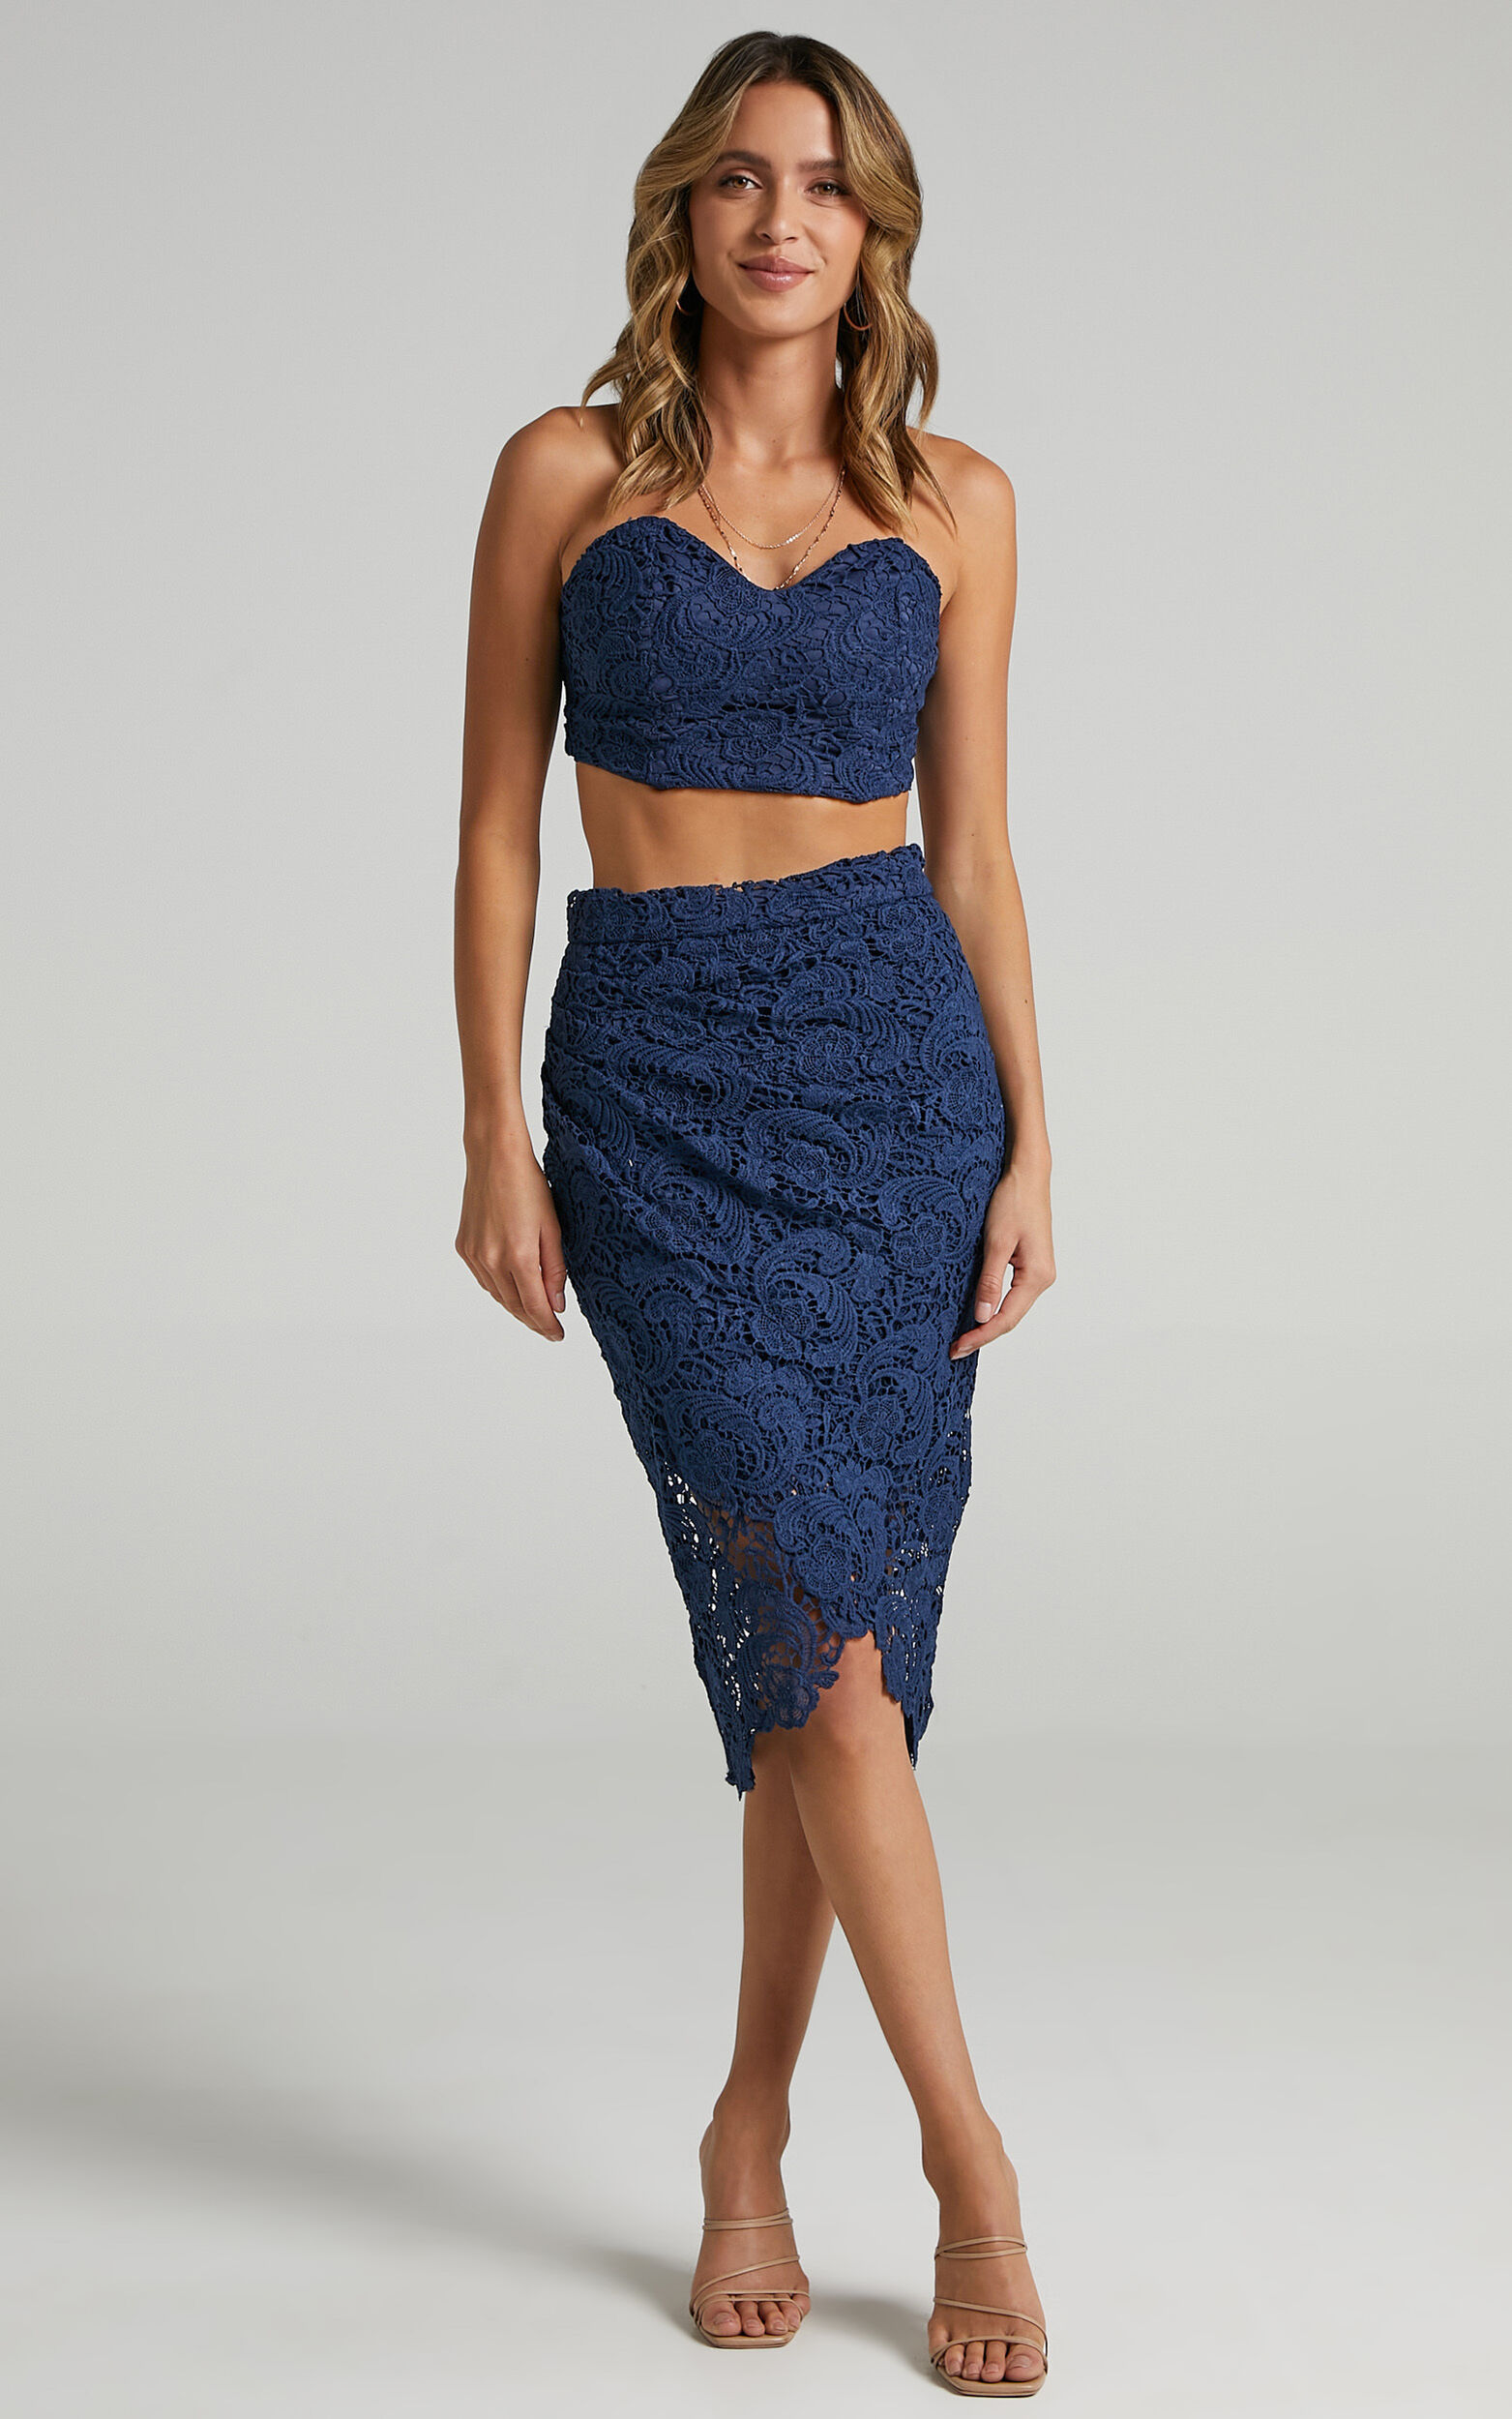 Daliah Two Piece Set in Navy Lace - 04, NVY4, super-hi-res image number null